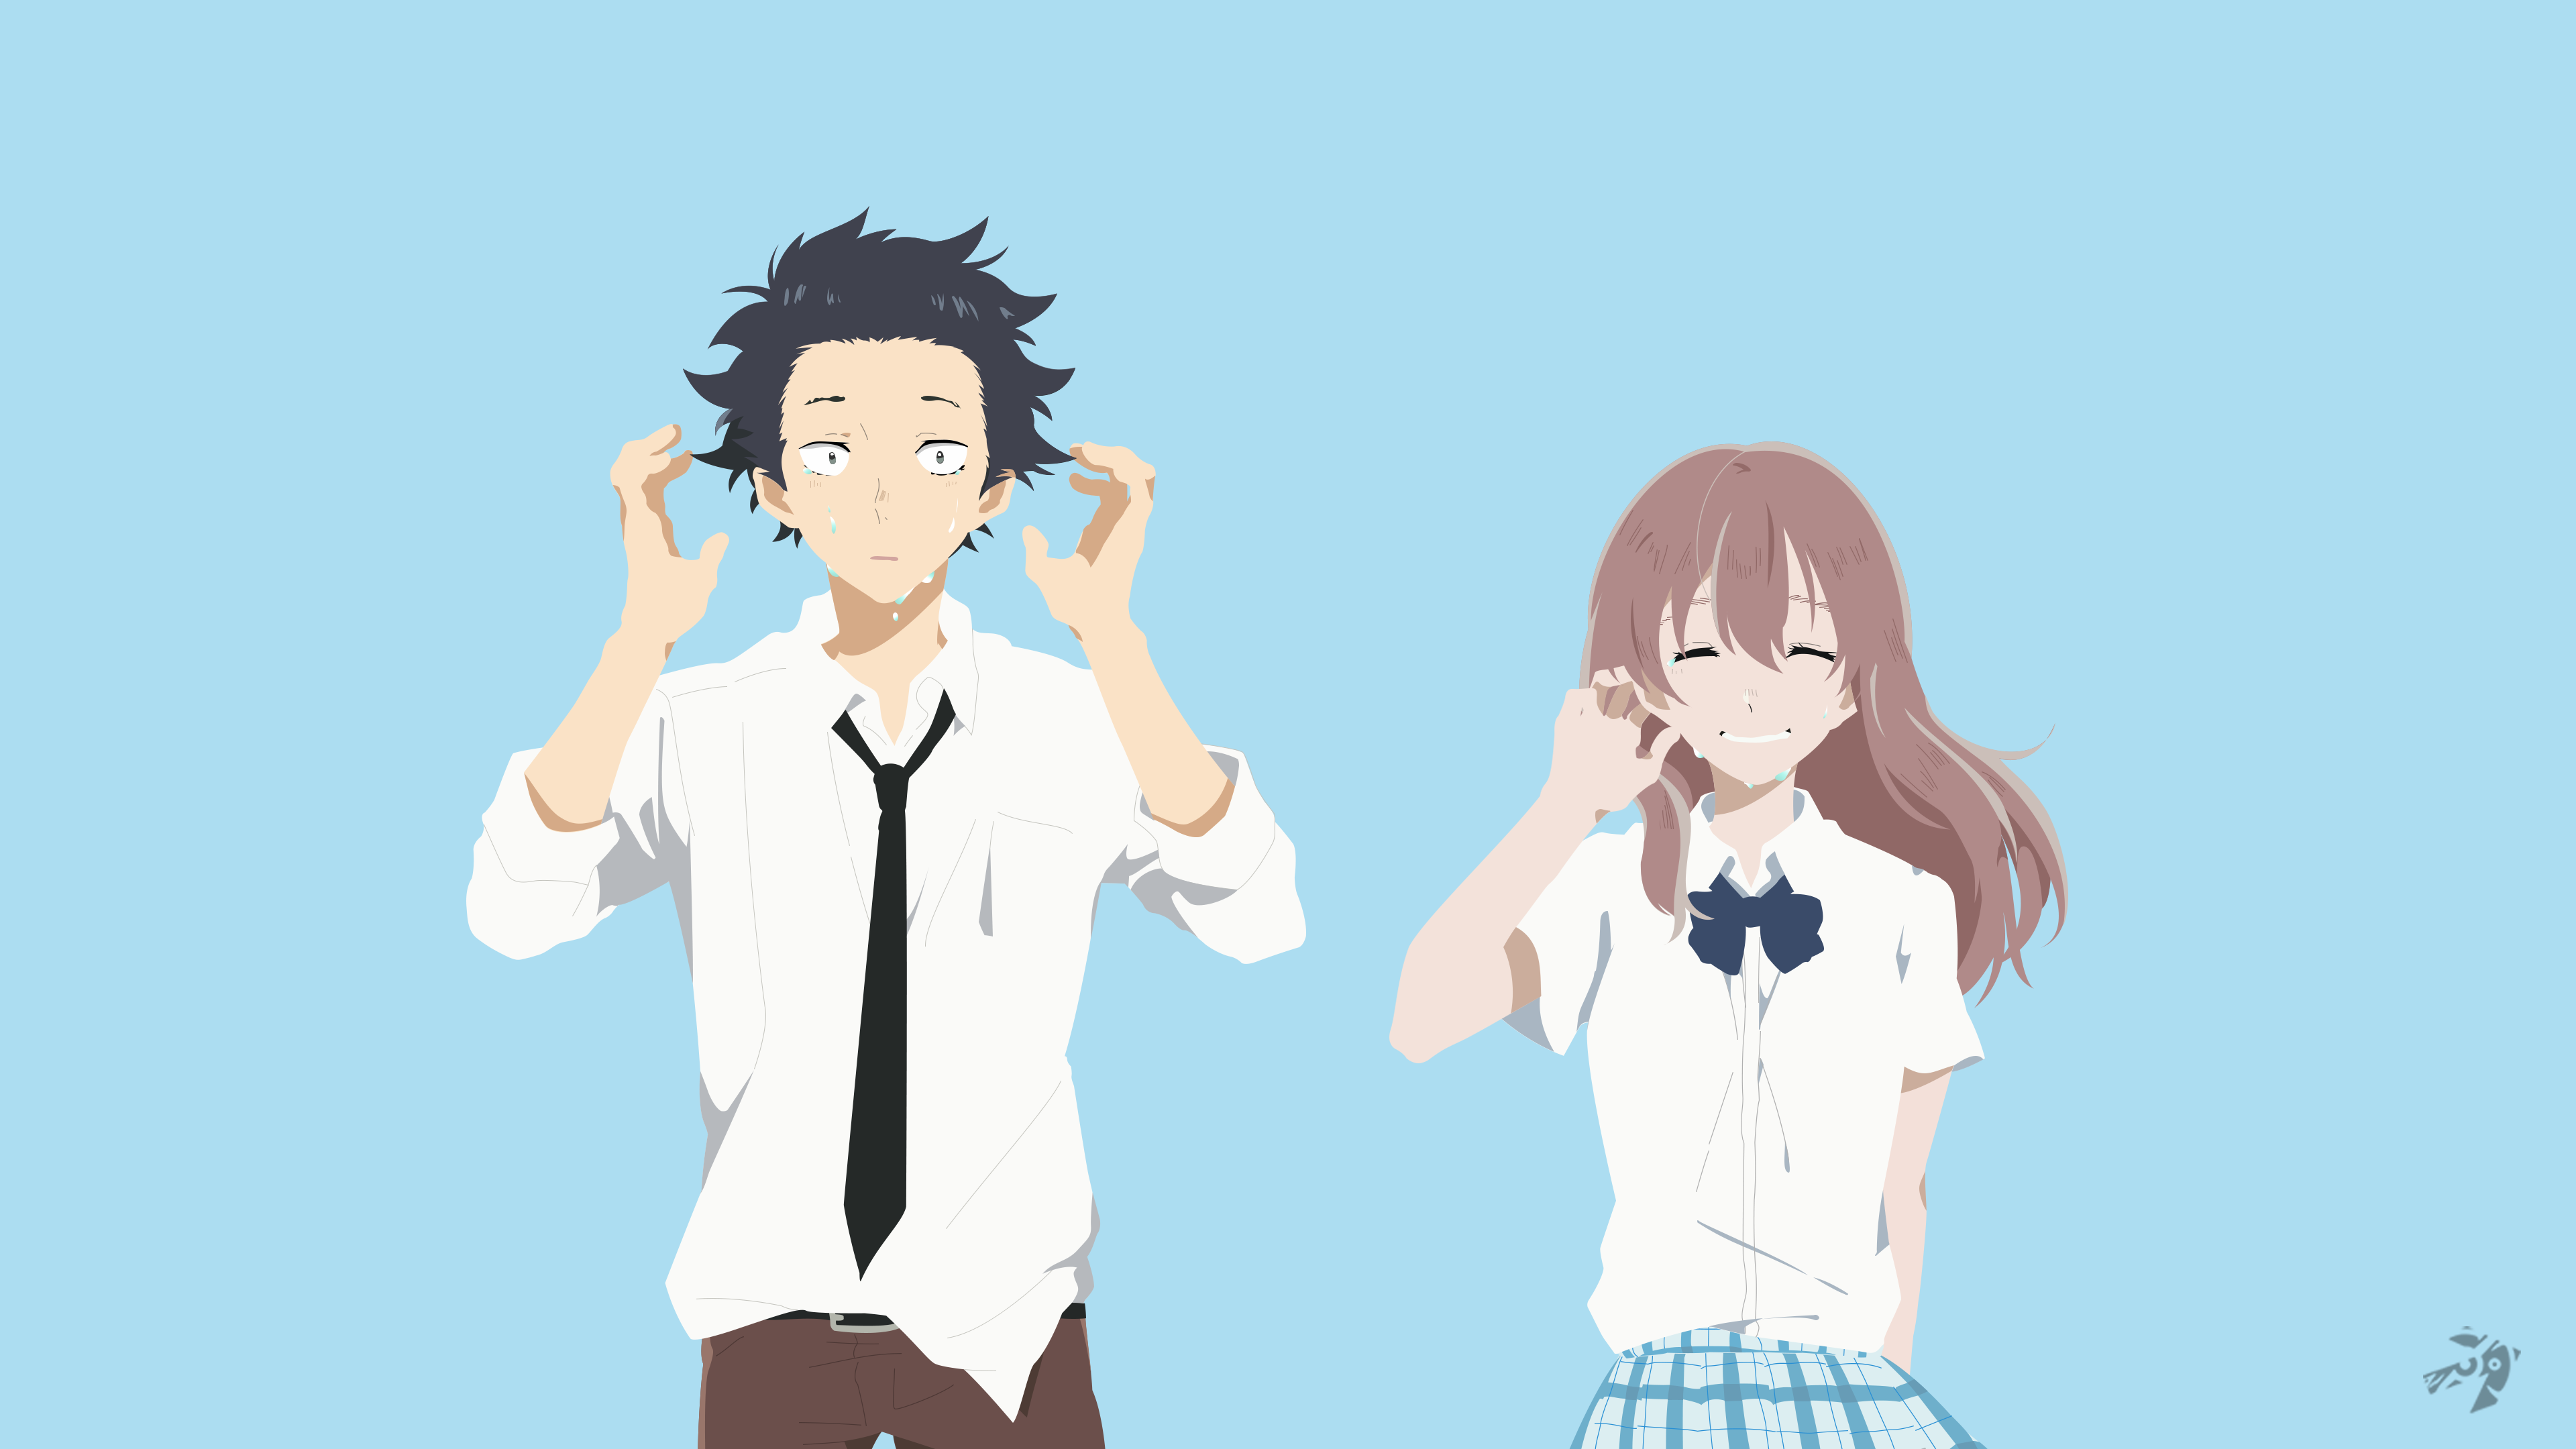 Koe no katachi minimalist anime by lucifer012 on deviantart for Koi no katachi